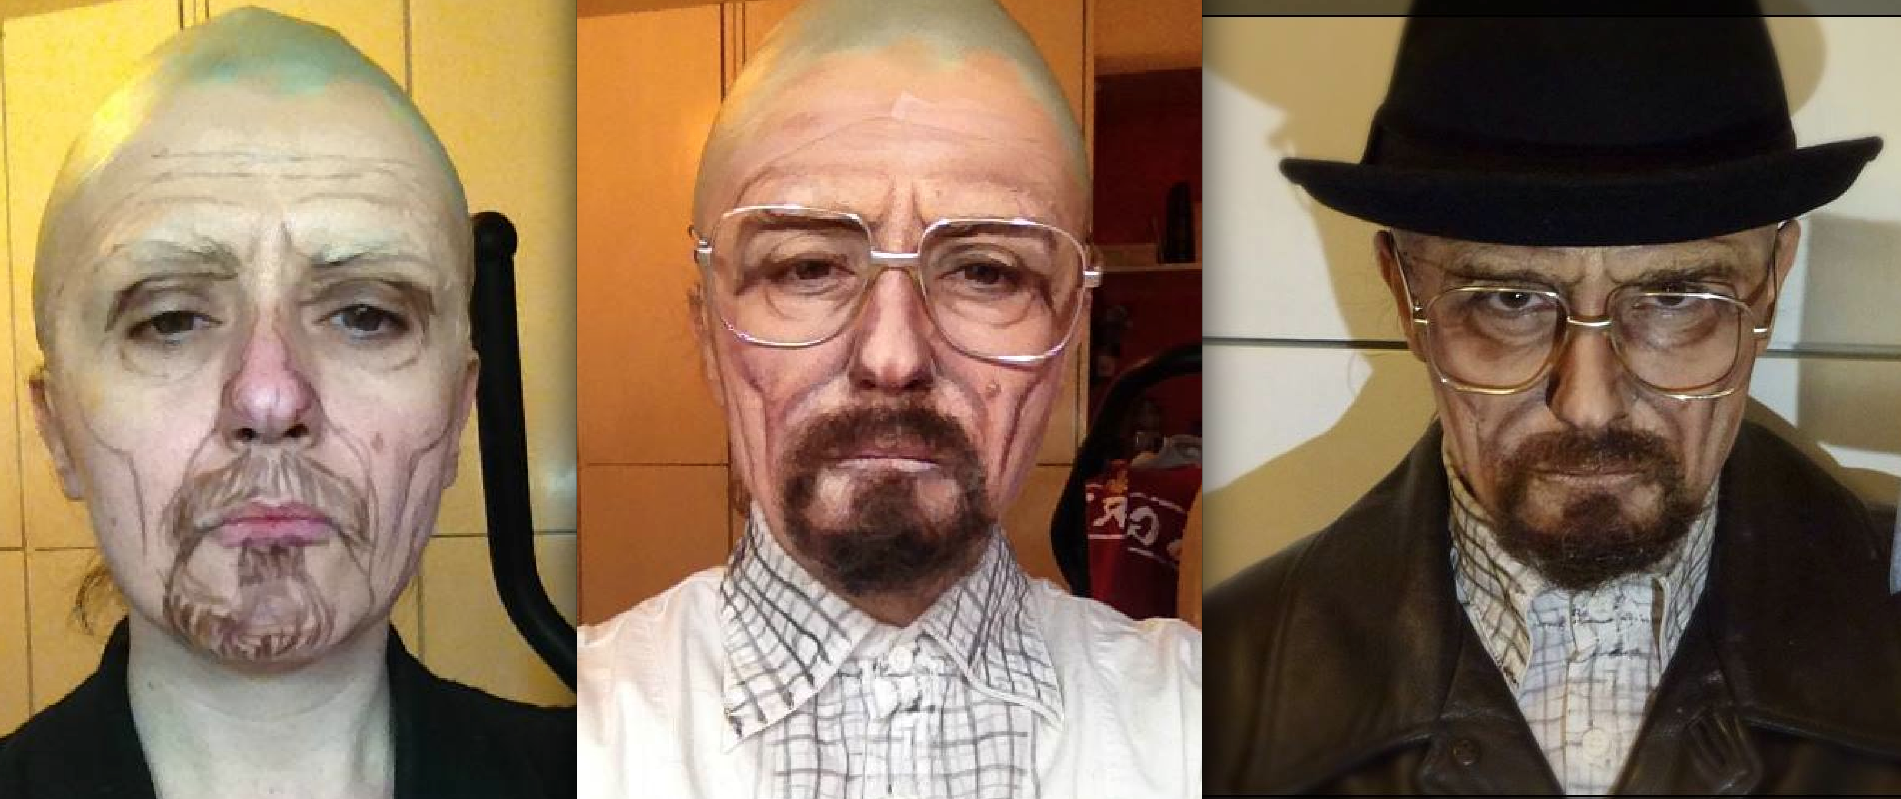 Lucia Pittalis as Bryan Cranston's character Walter White in Breaking Bad